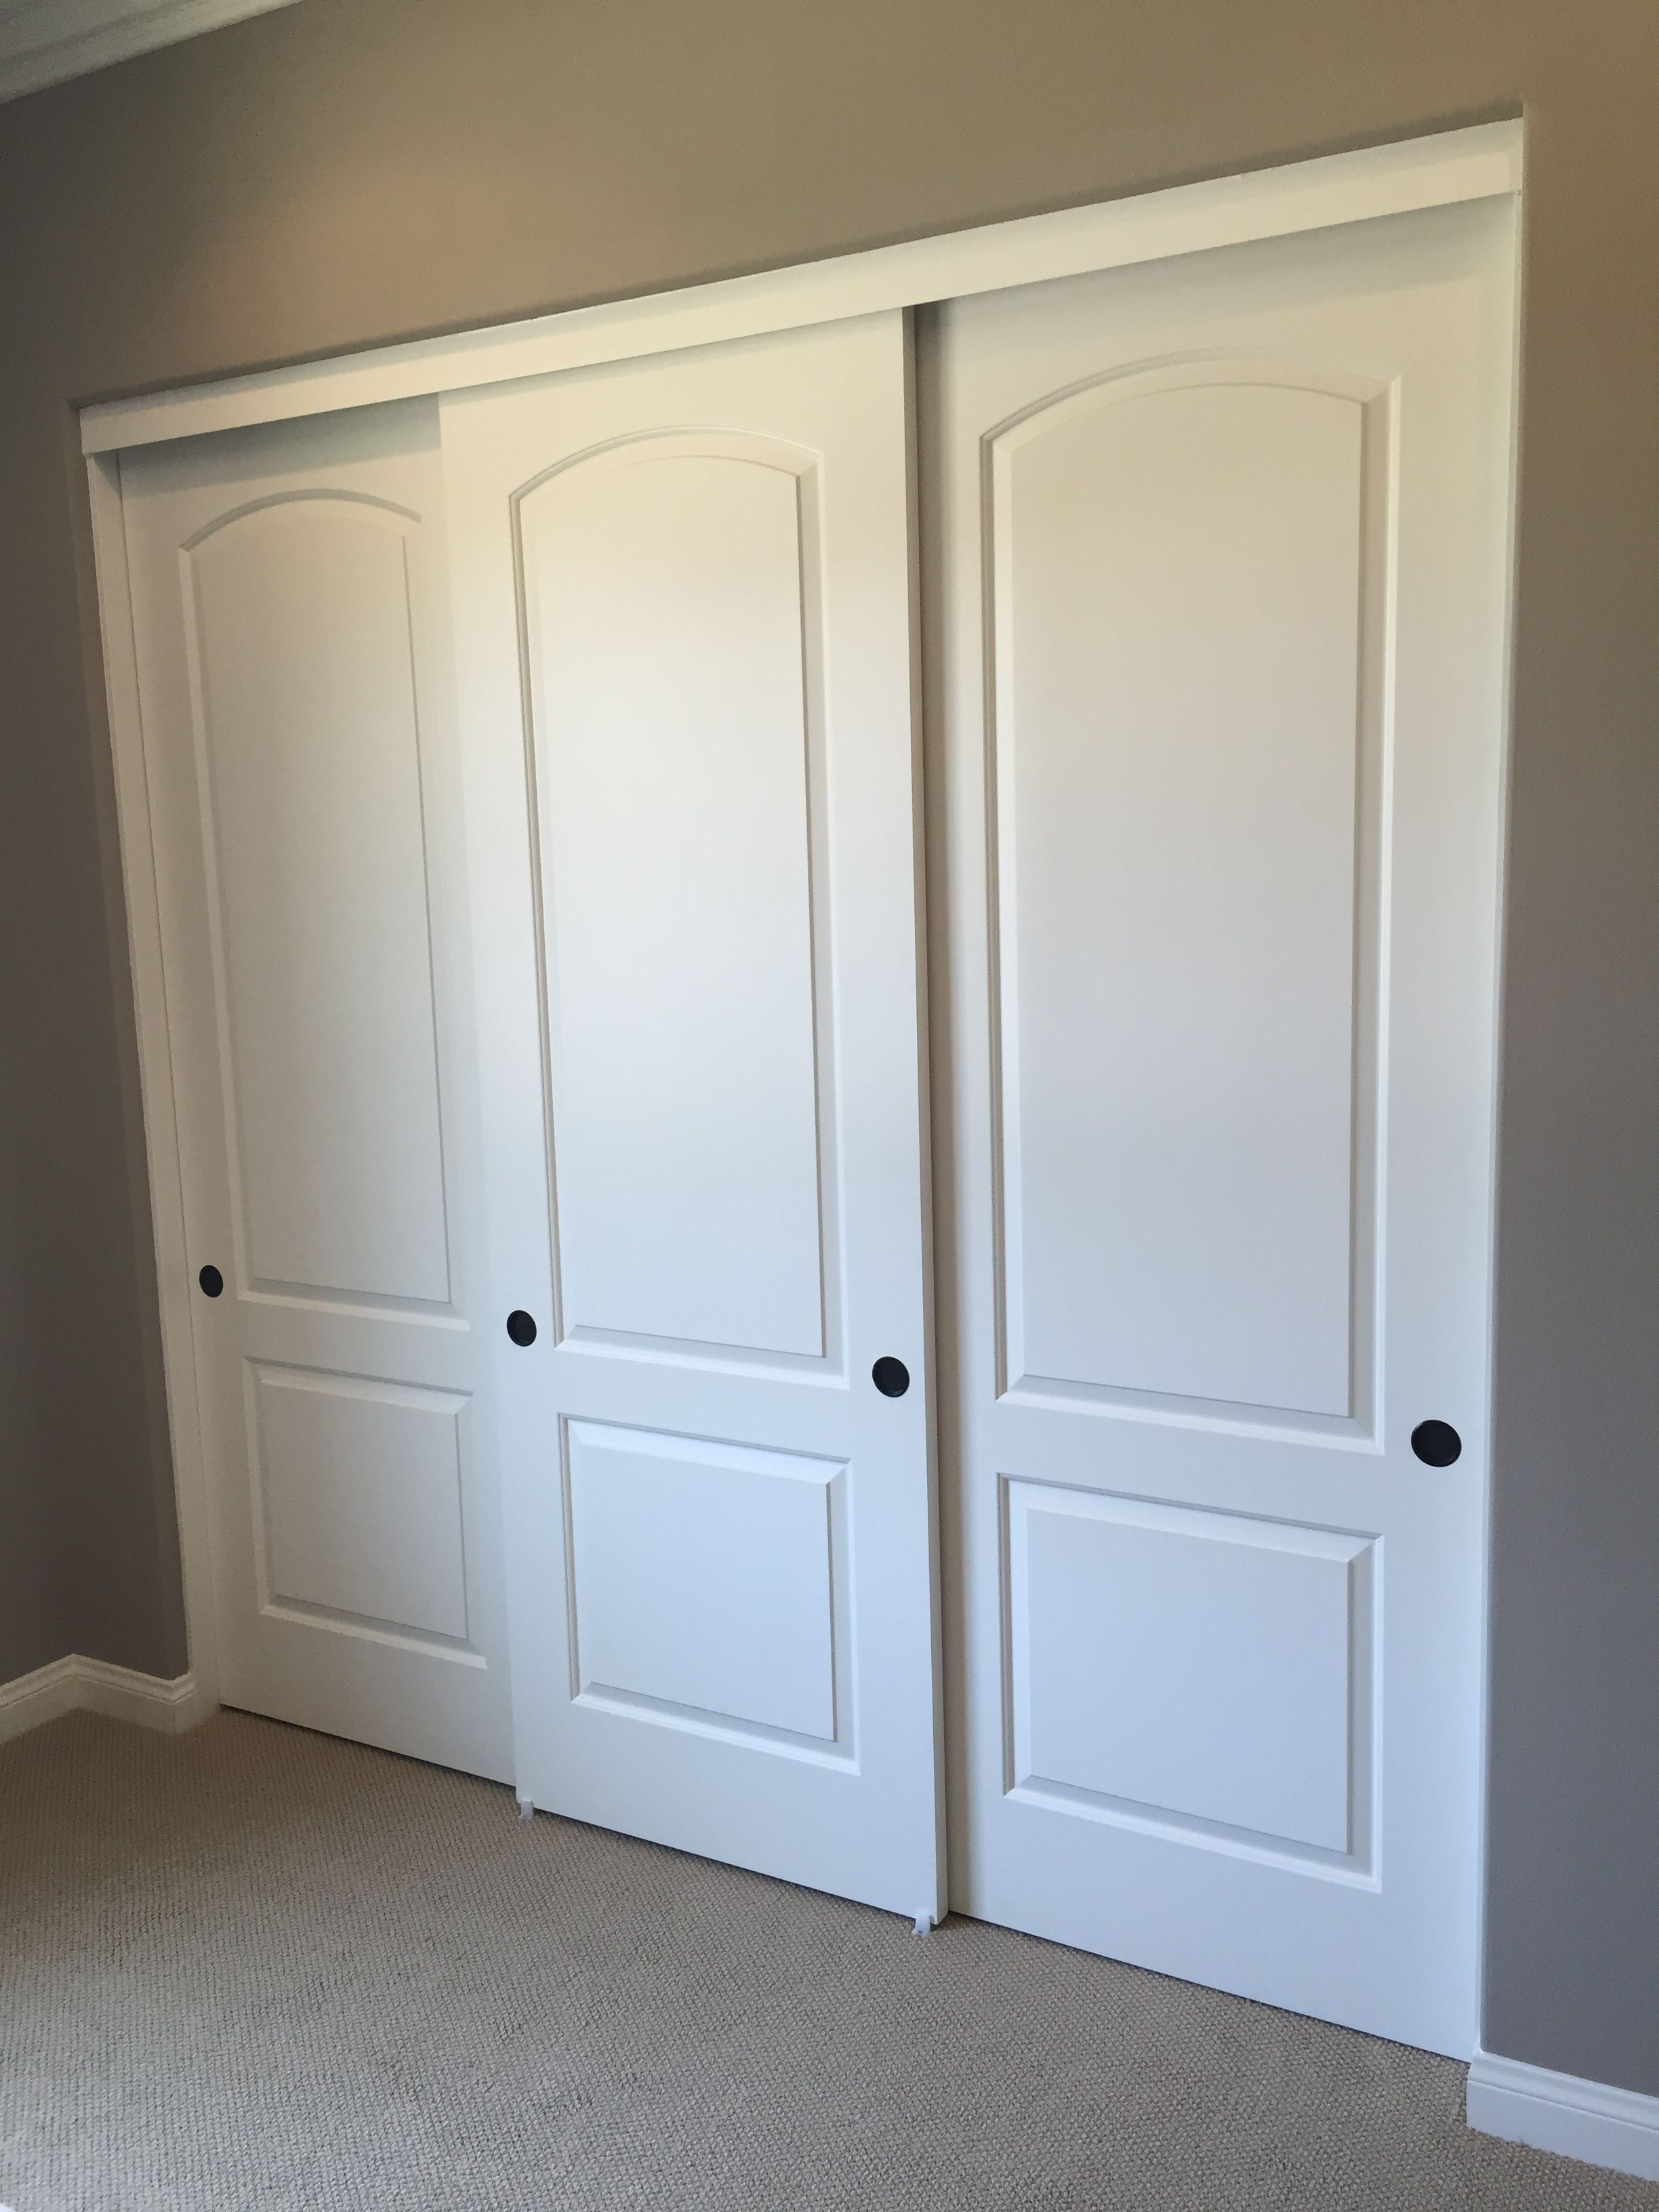 Sliding Byp Closet Doors Of Southern California Are You Looking For Hollow Core Or Solid Molded Panel Your Bedroom Office